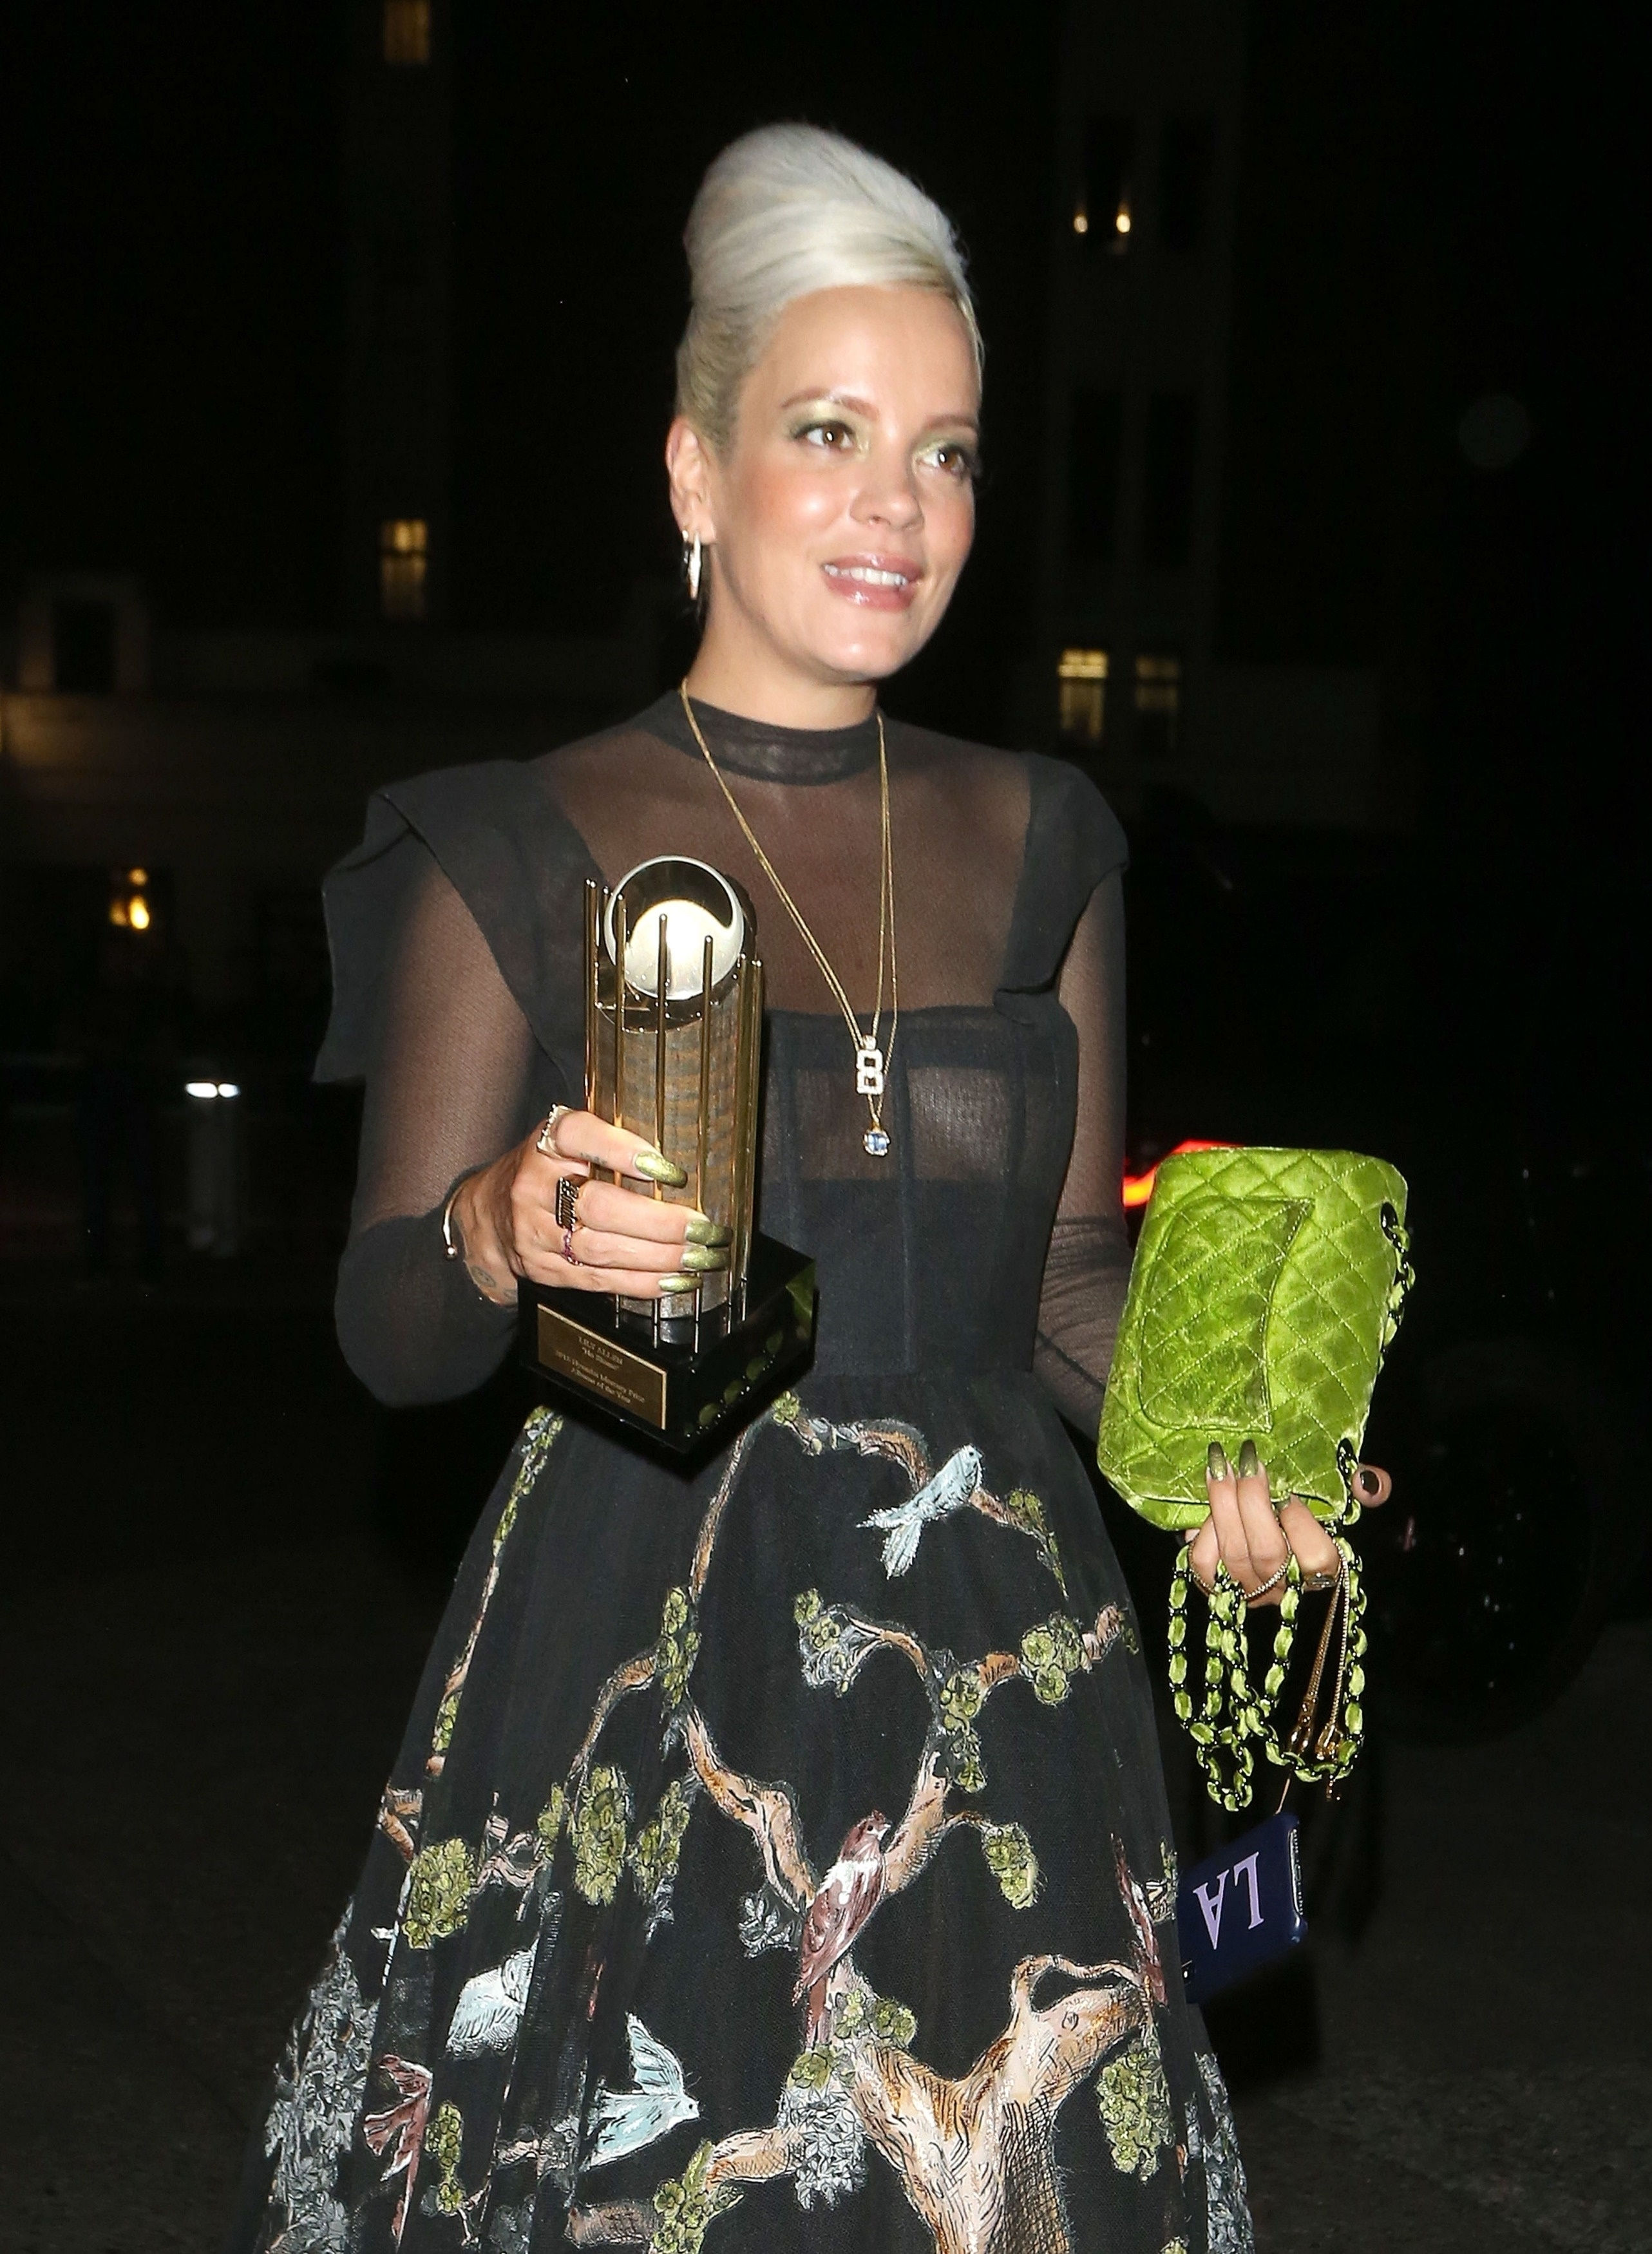 0919040453772_01_Lily-Allen-See-Through-TheFappeningBlog.com-2.jpg